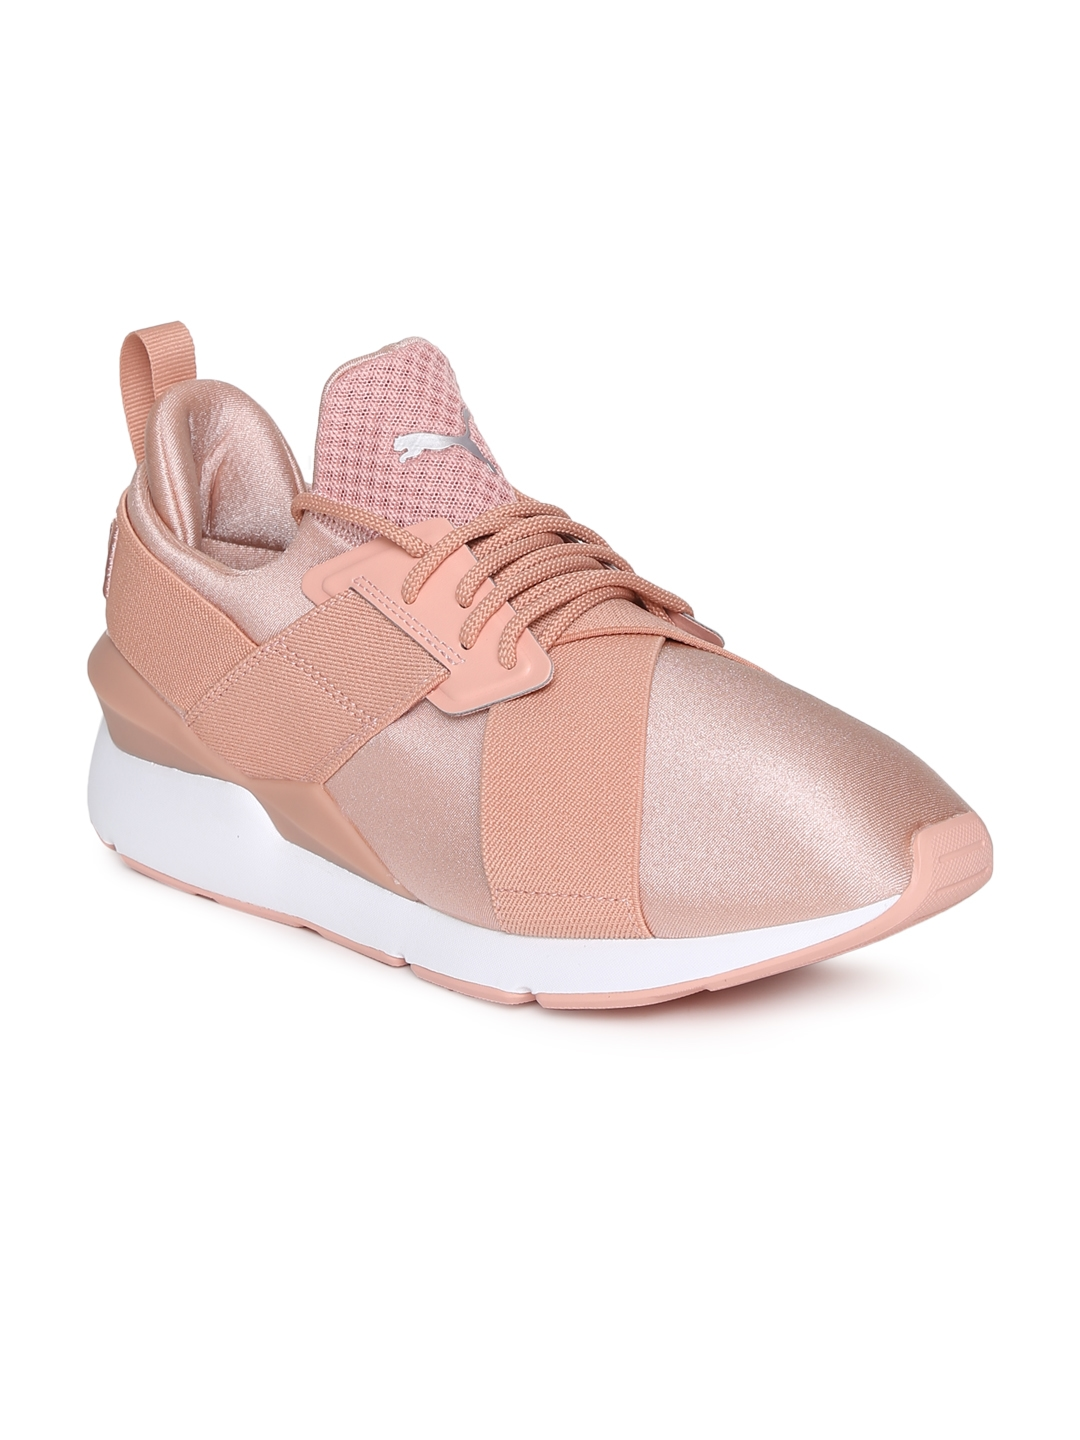 Buy Puma Women Pink Muse Satin EP Sneakers - Casual Shoes for Women ... 15b9fc00d